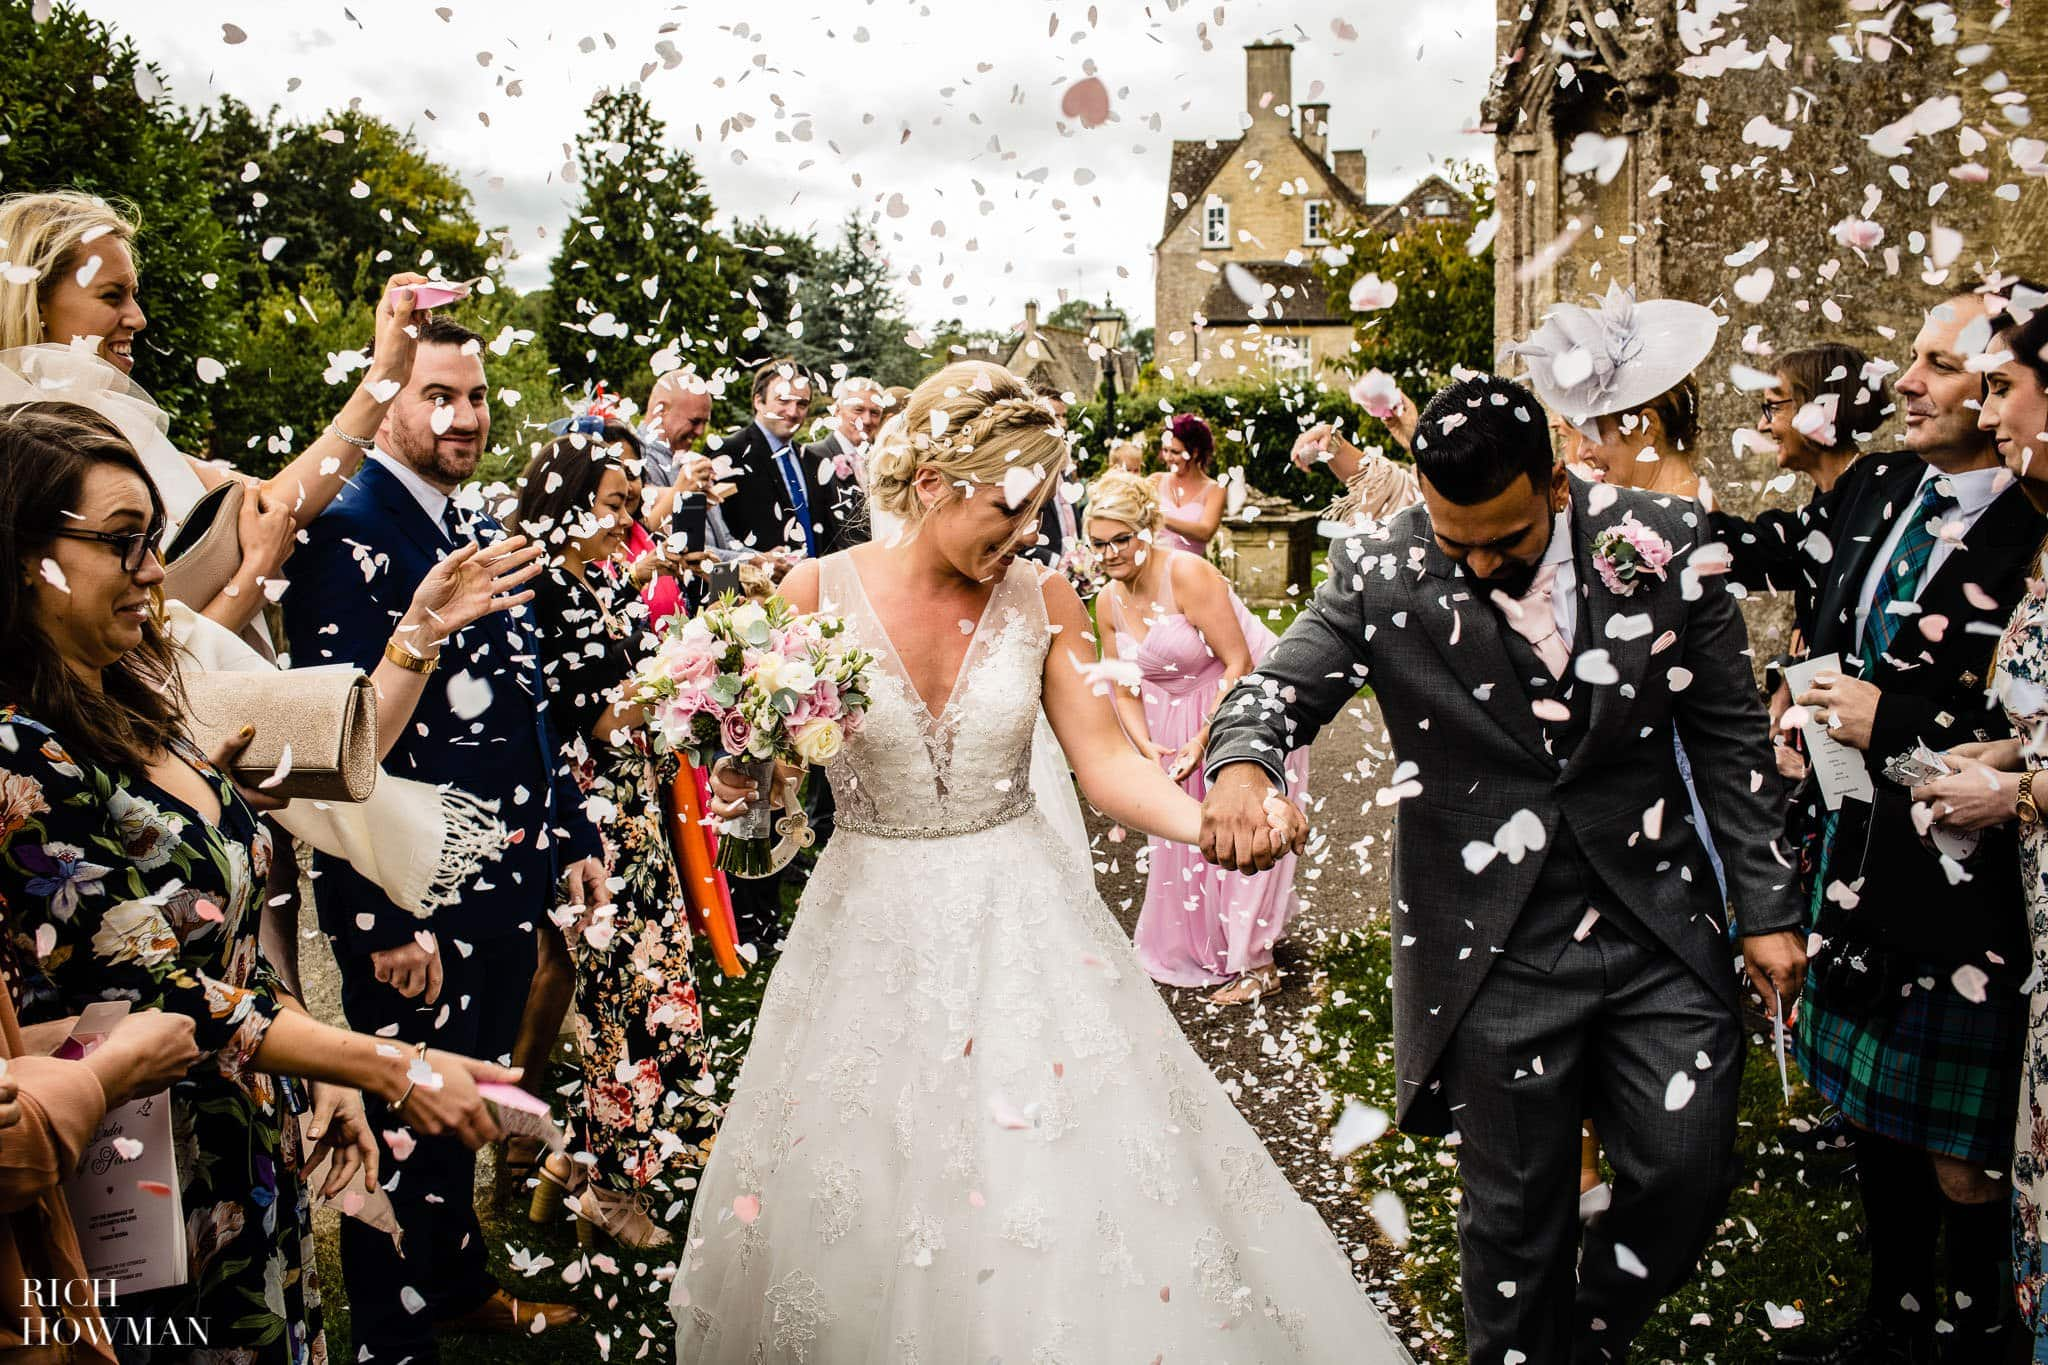 Wedding Photographers in Oxfordshire | Wedding Photographers Witney 56